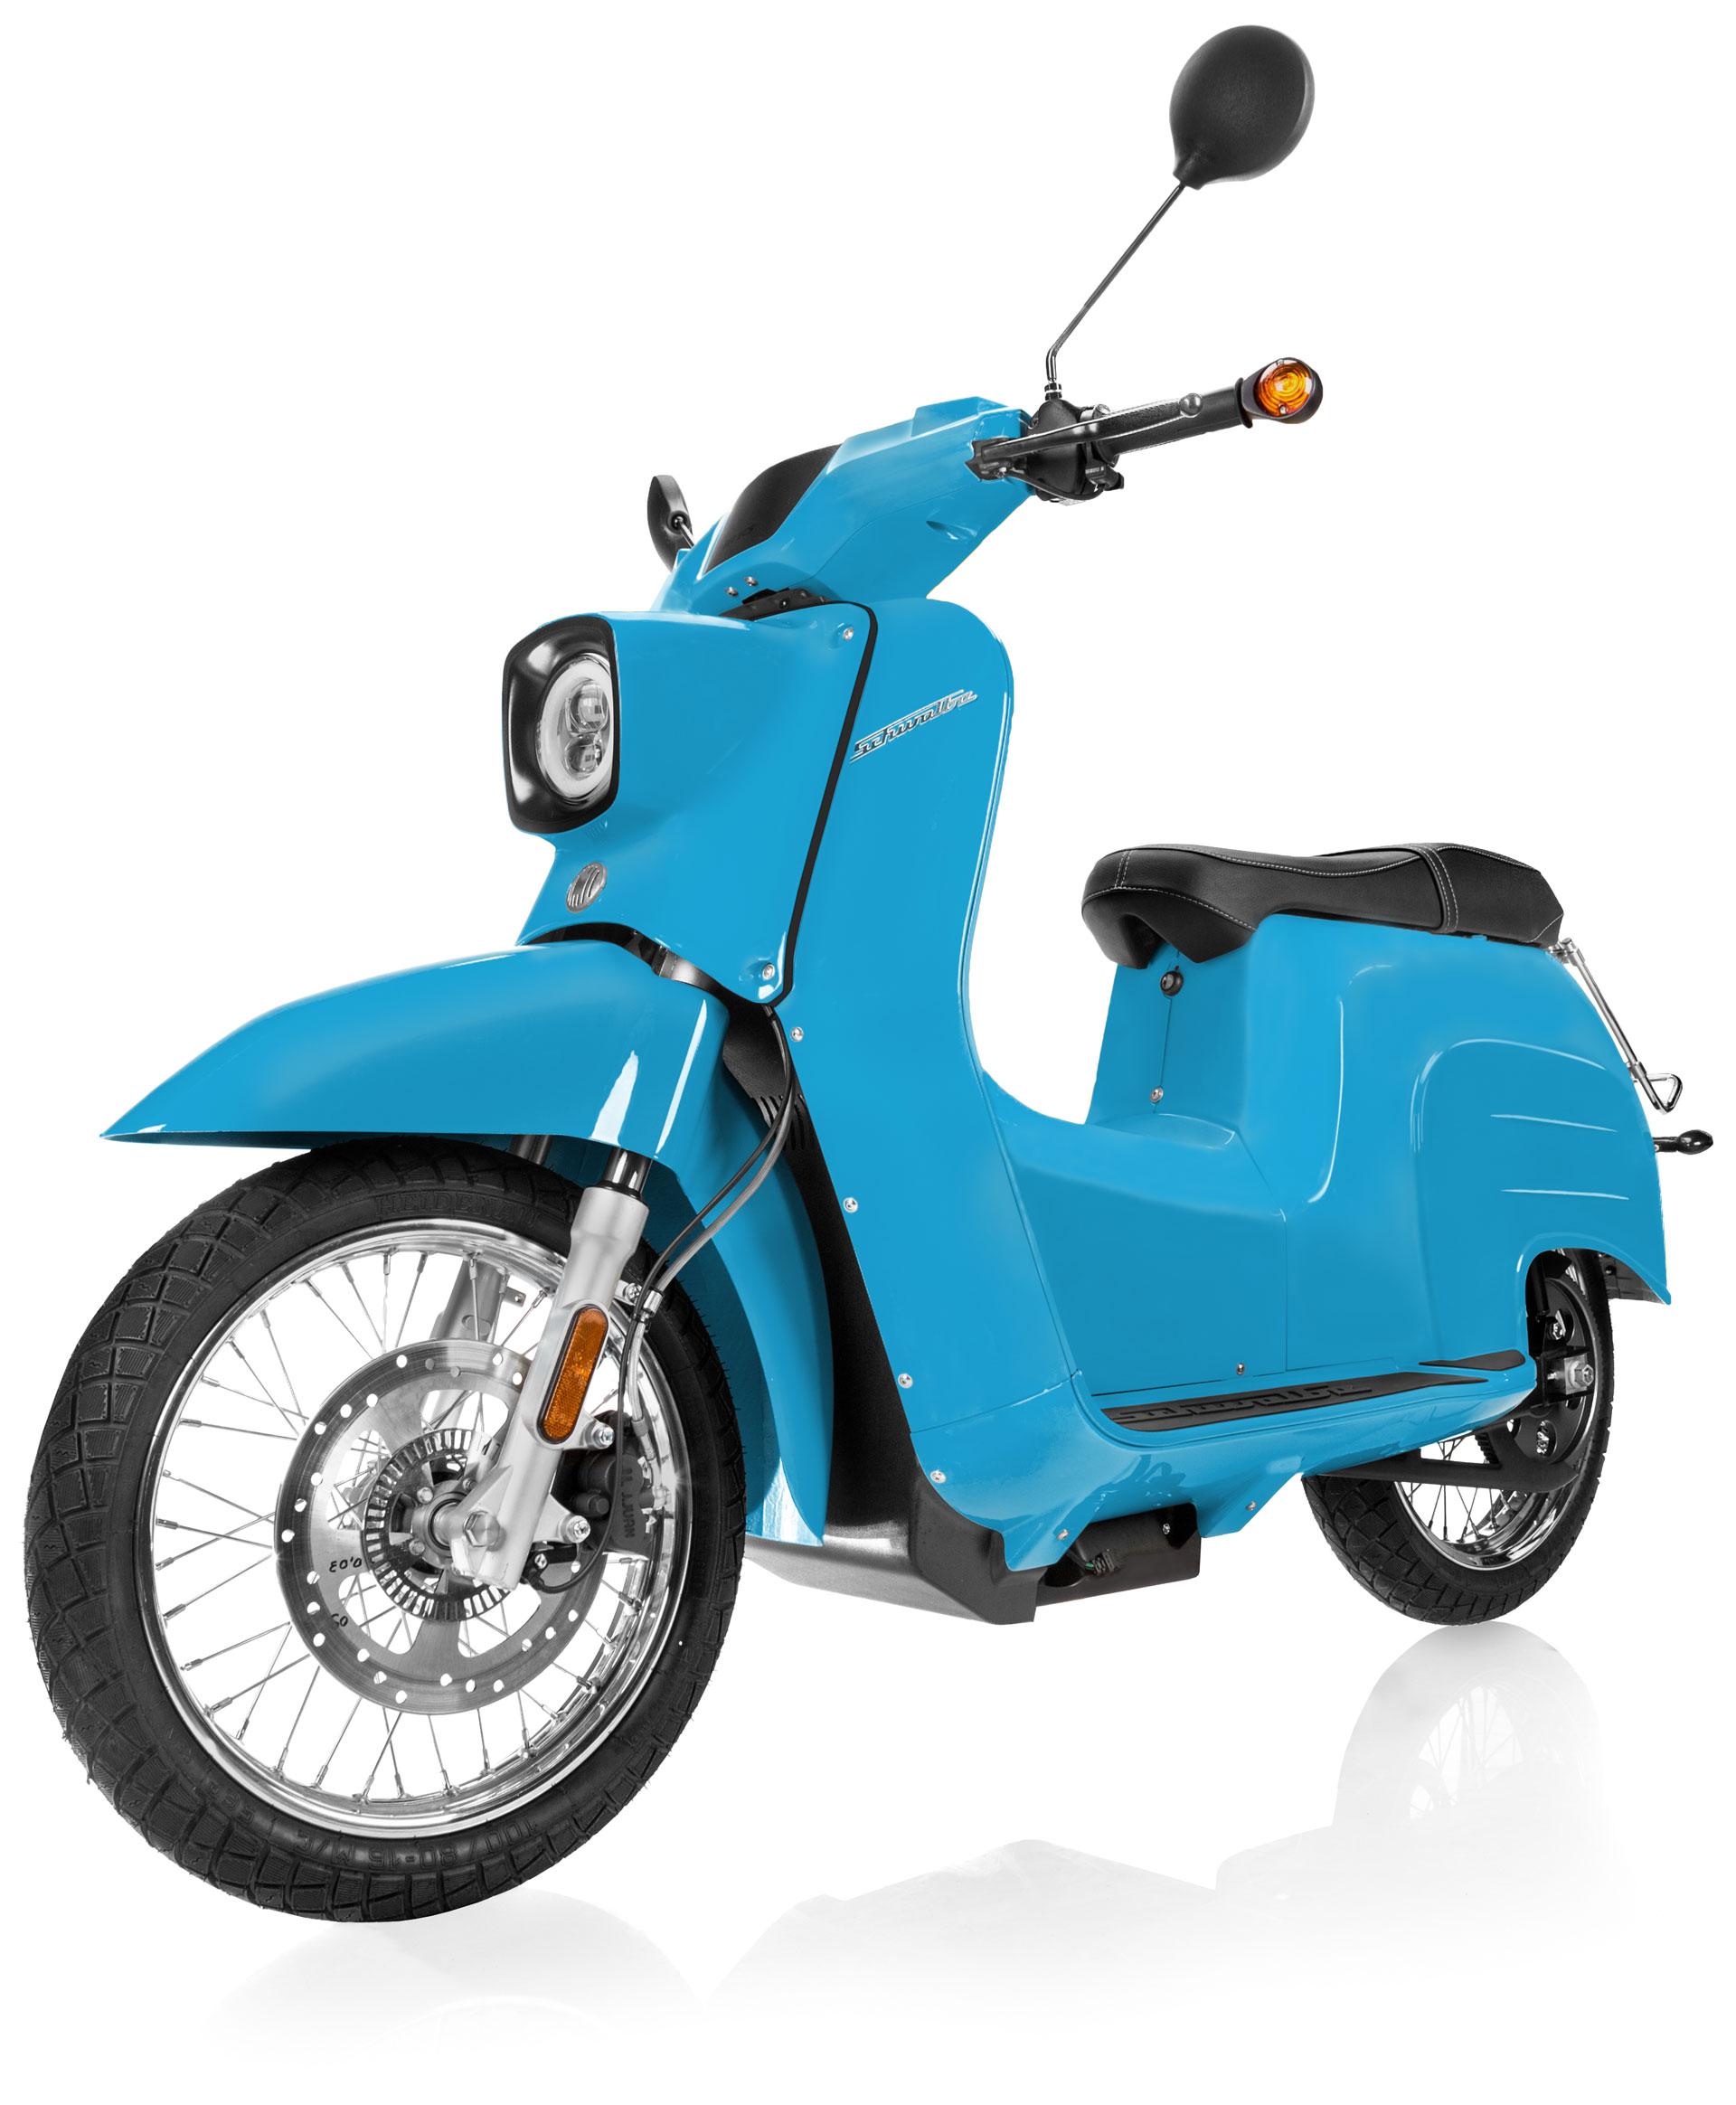 Schwalbe electric scooter